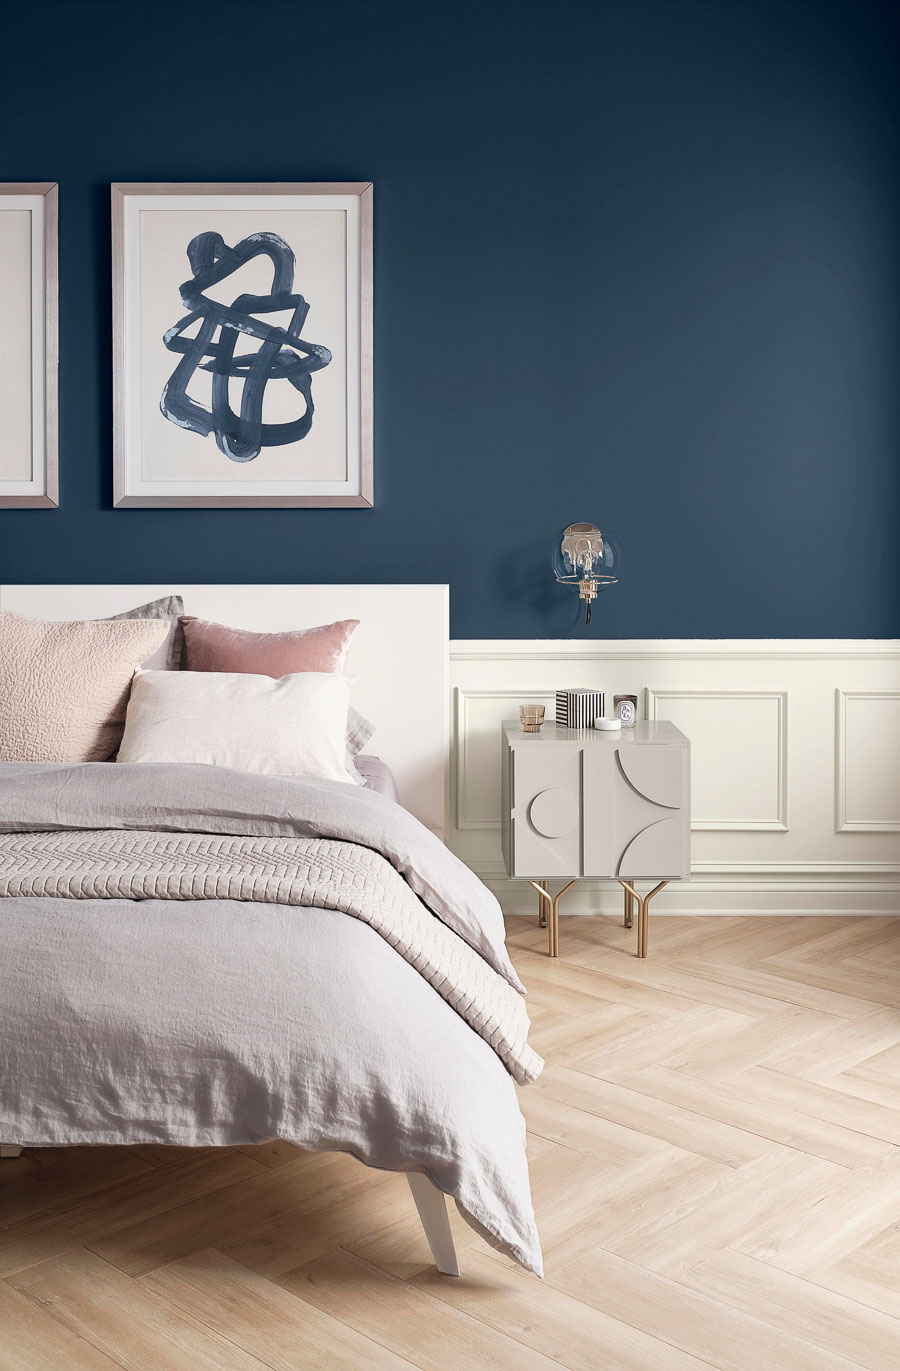 Sherwin-Williams Naval is their 2020 color of the year! See what other colors are trending!